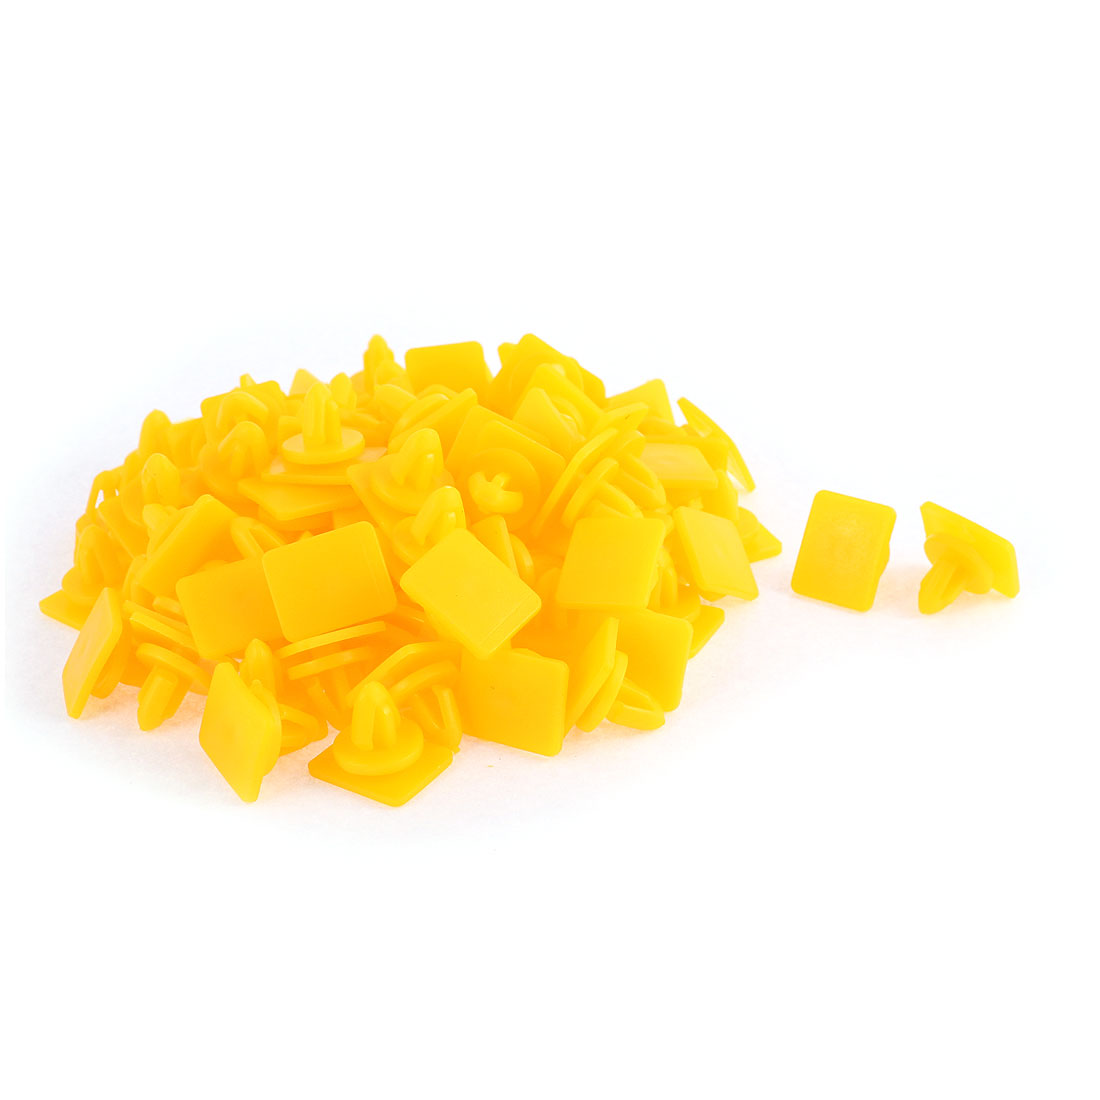 100 Pcs Yellow Plastic Bumper Rivet Fender Panel Clips for Hyundai